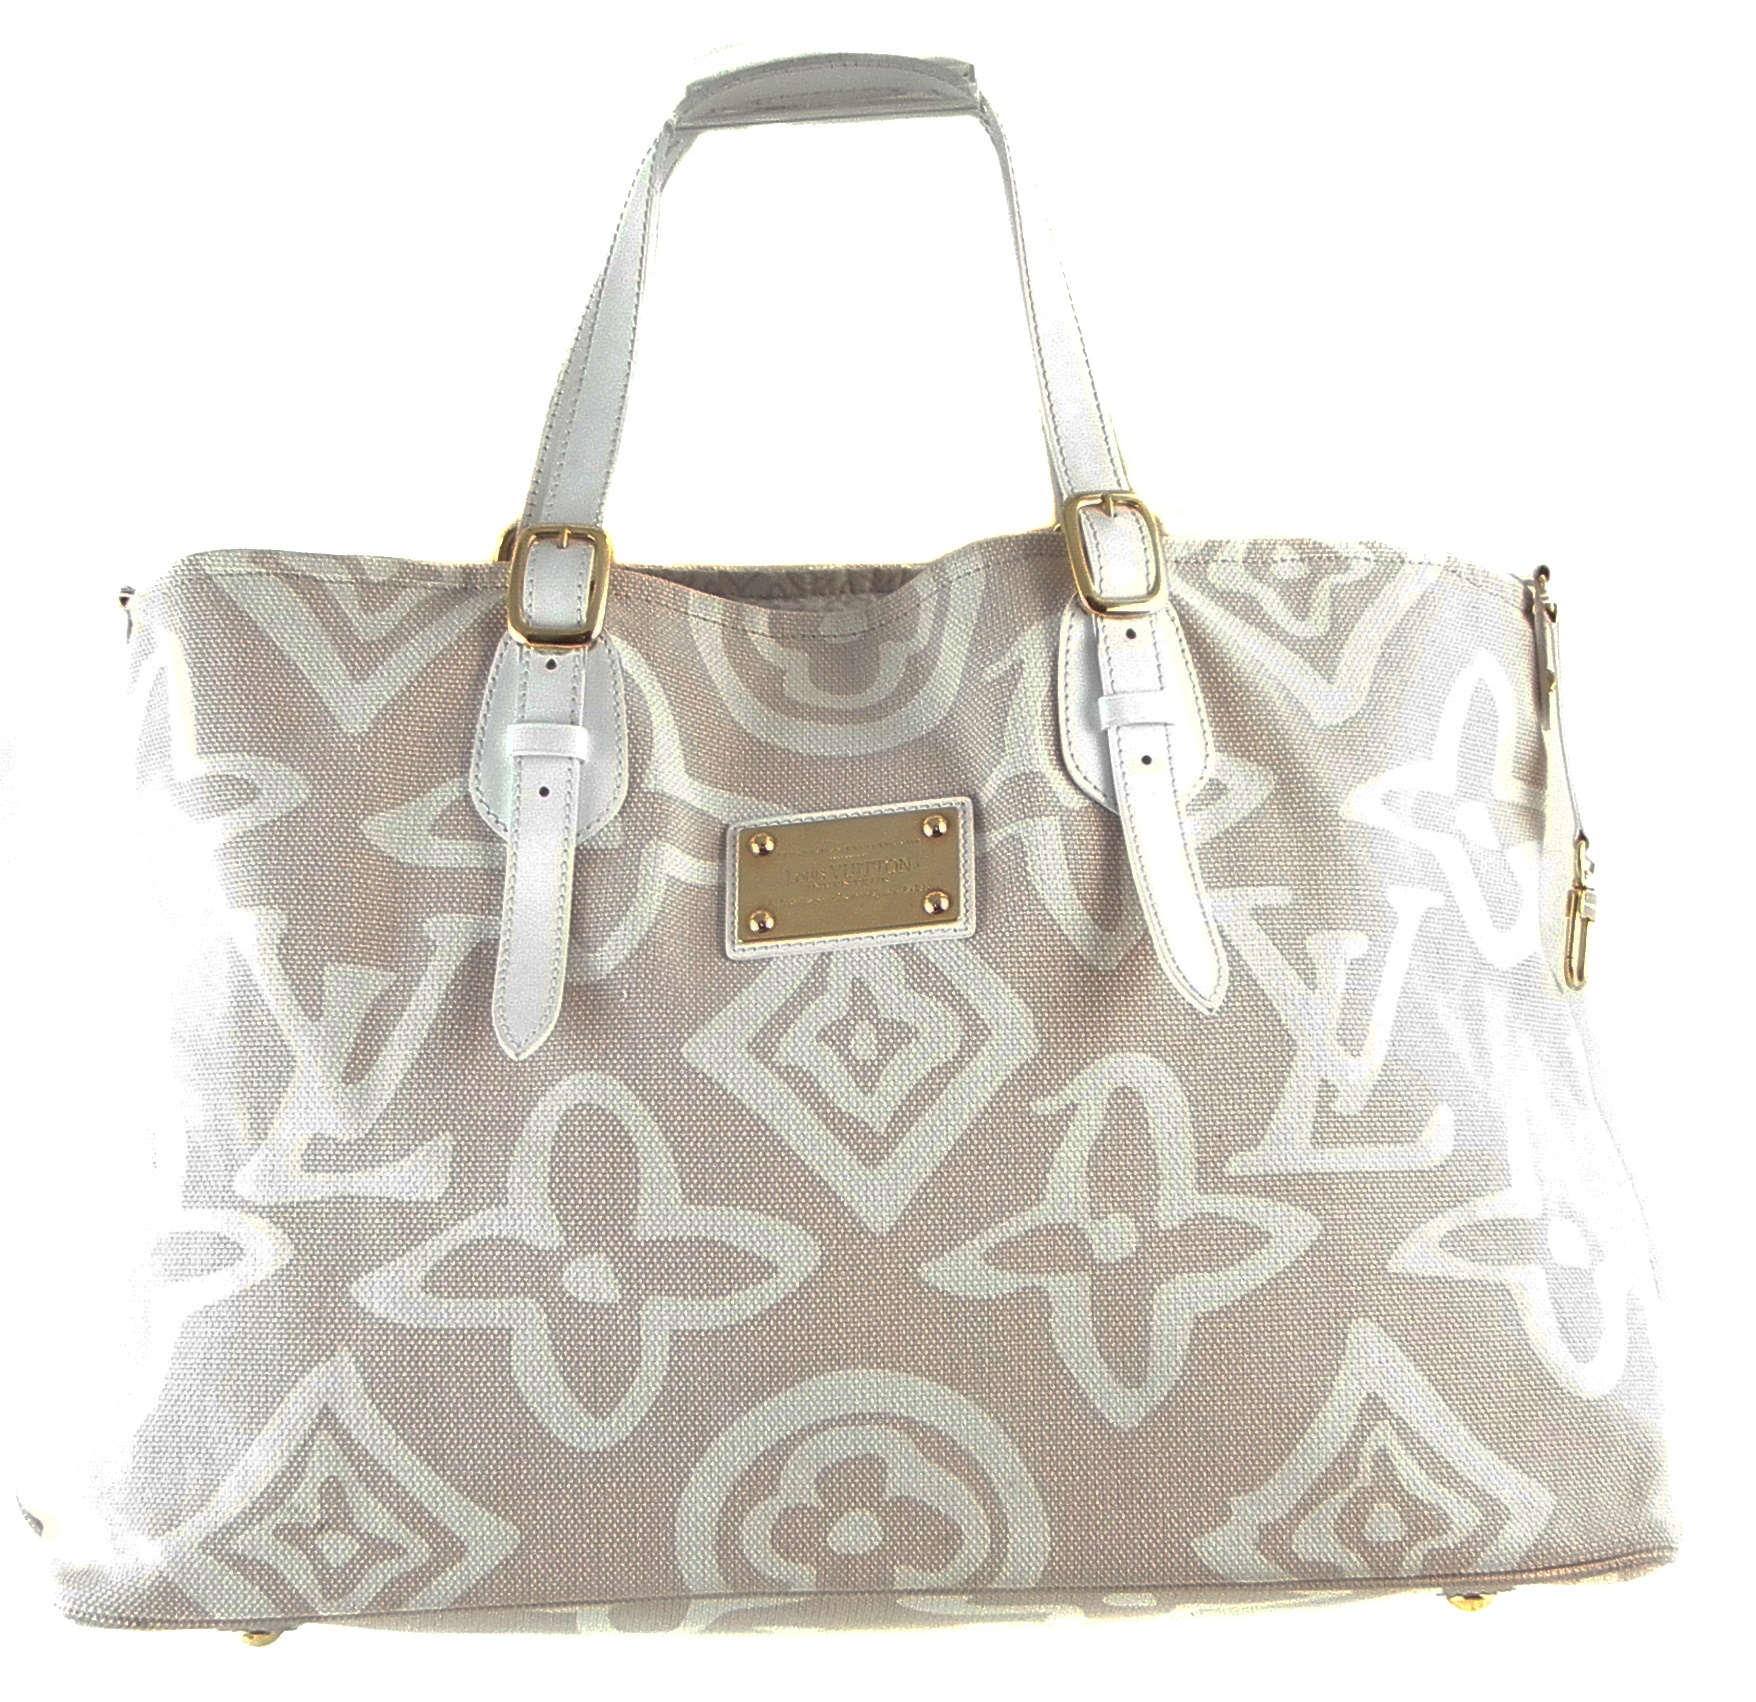 A Louis Vuitton Tahitienne Cabas GM handbag,